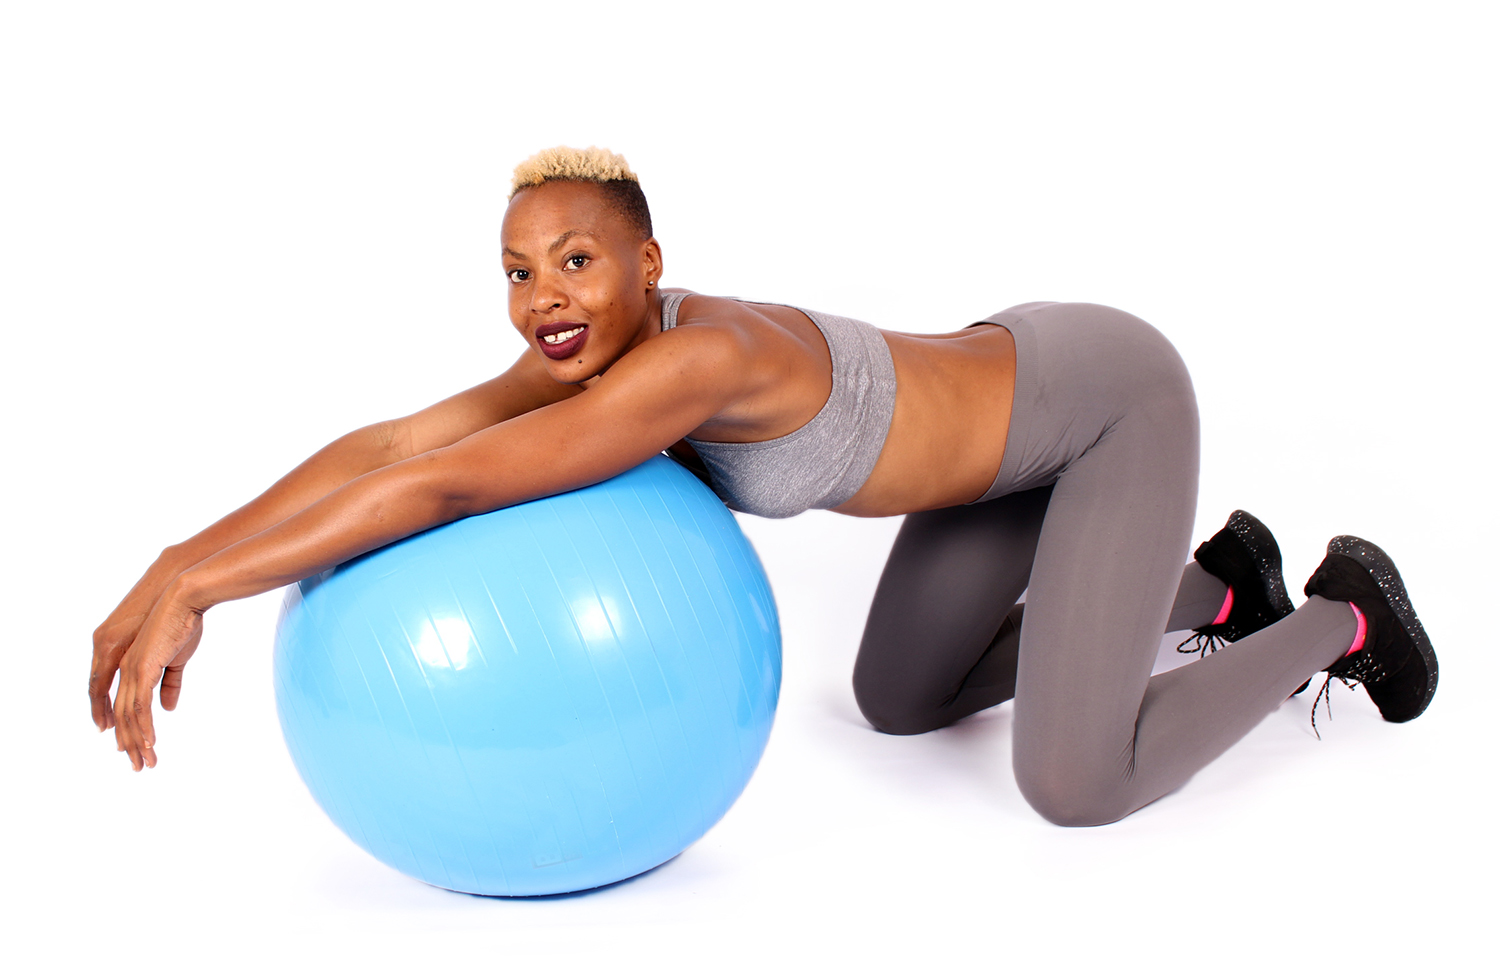 Smiling woman exercising on swiss ball